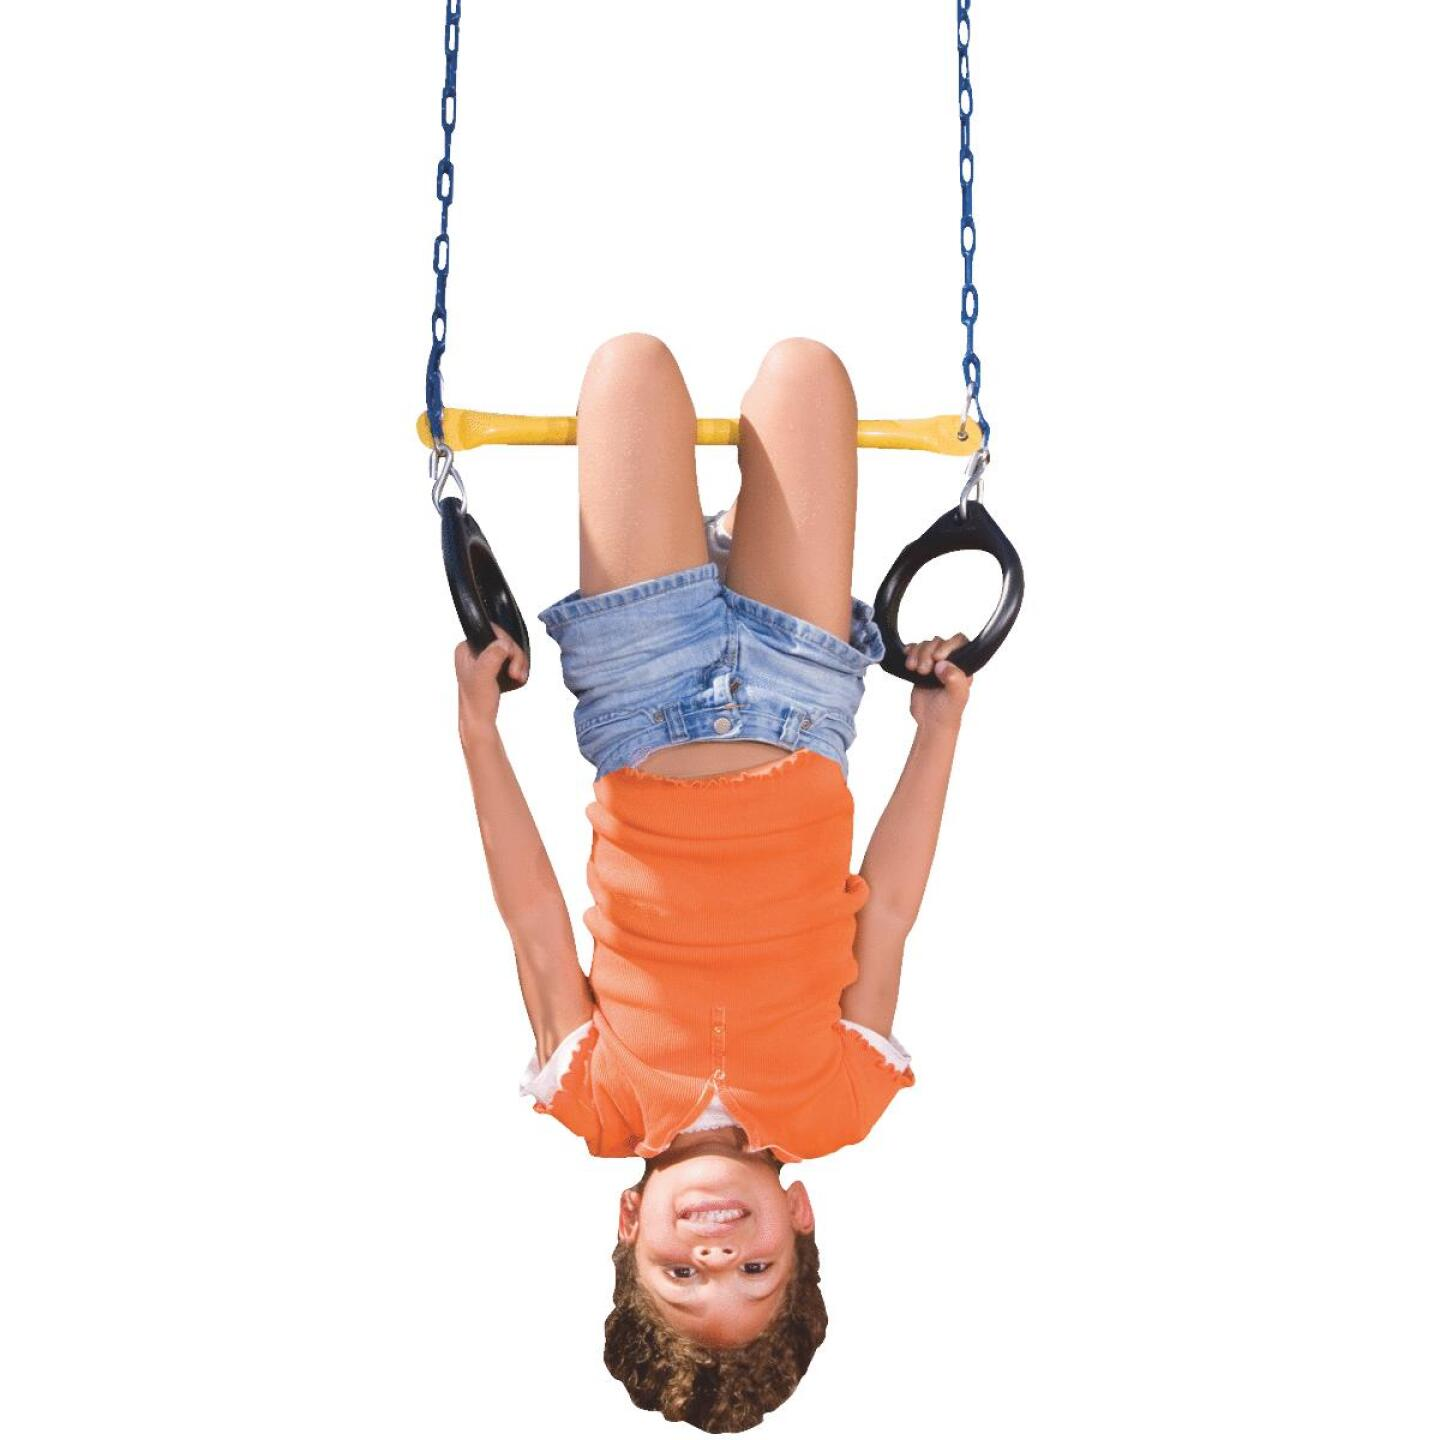 Swing N Slide 115 Lb. Weight Capacity Ring & Trapeze Combination Image 1